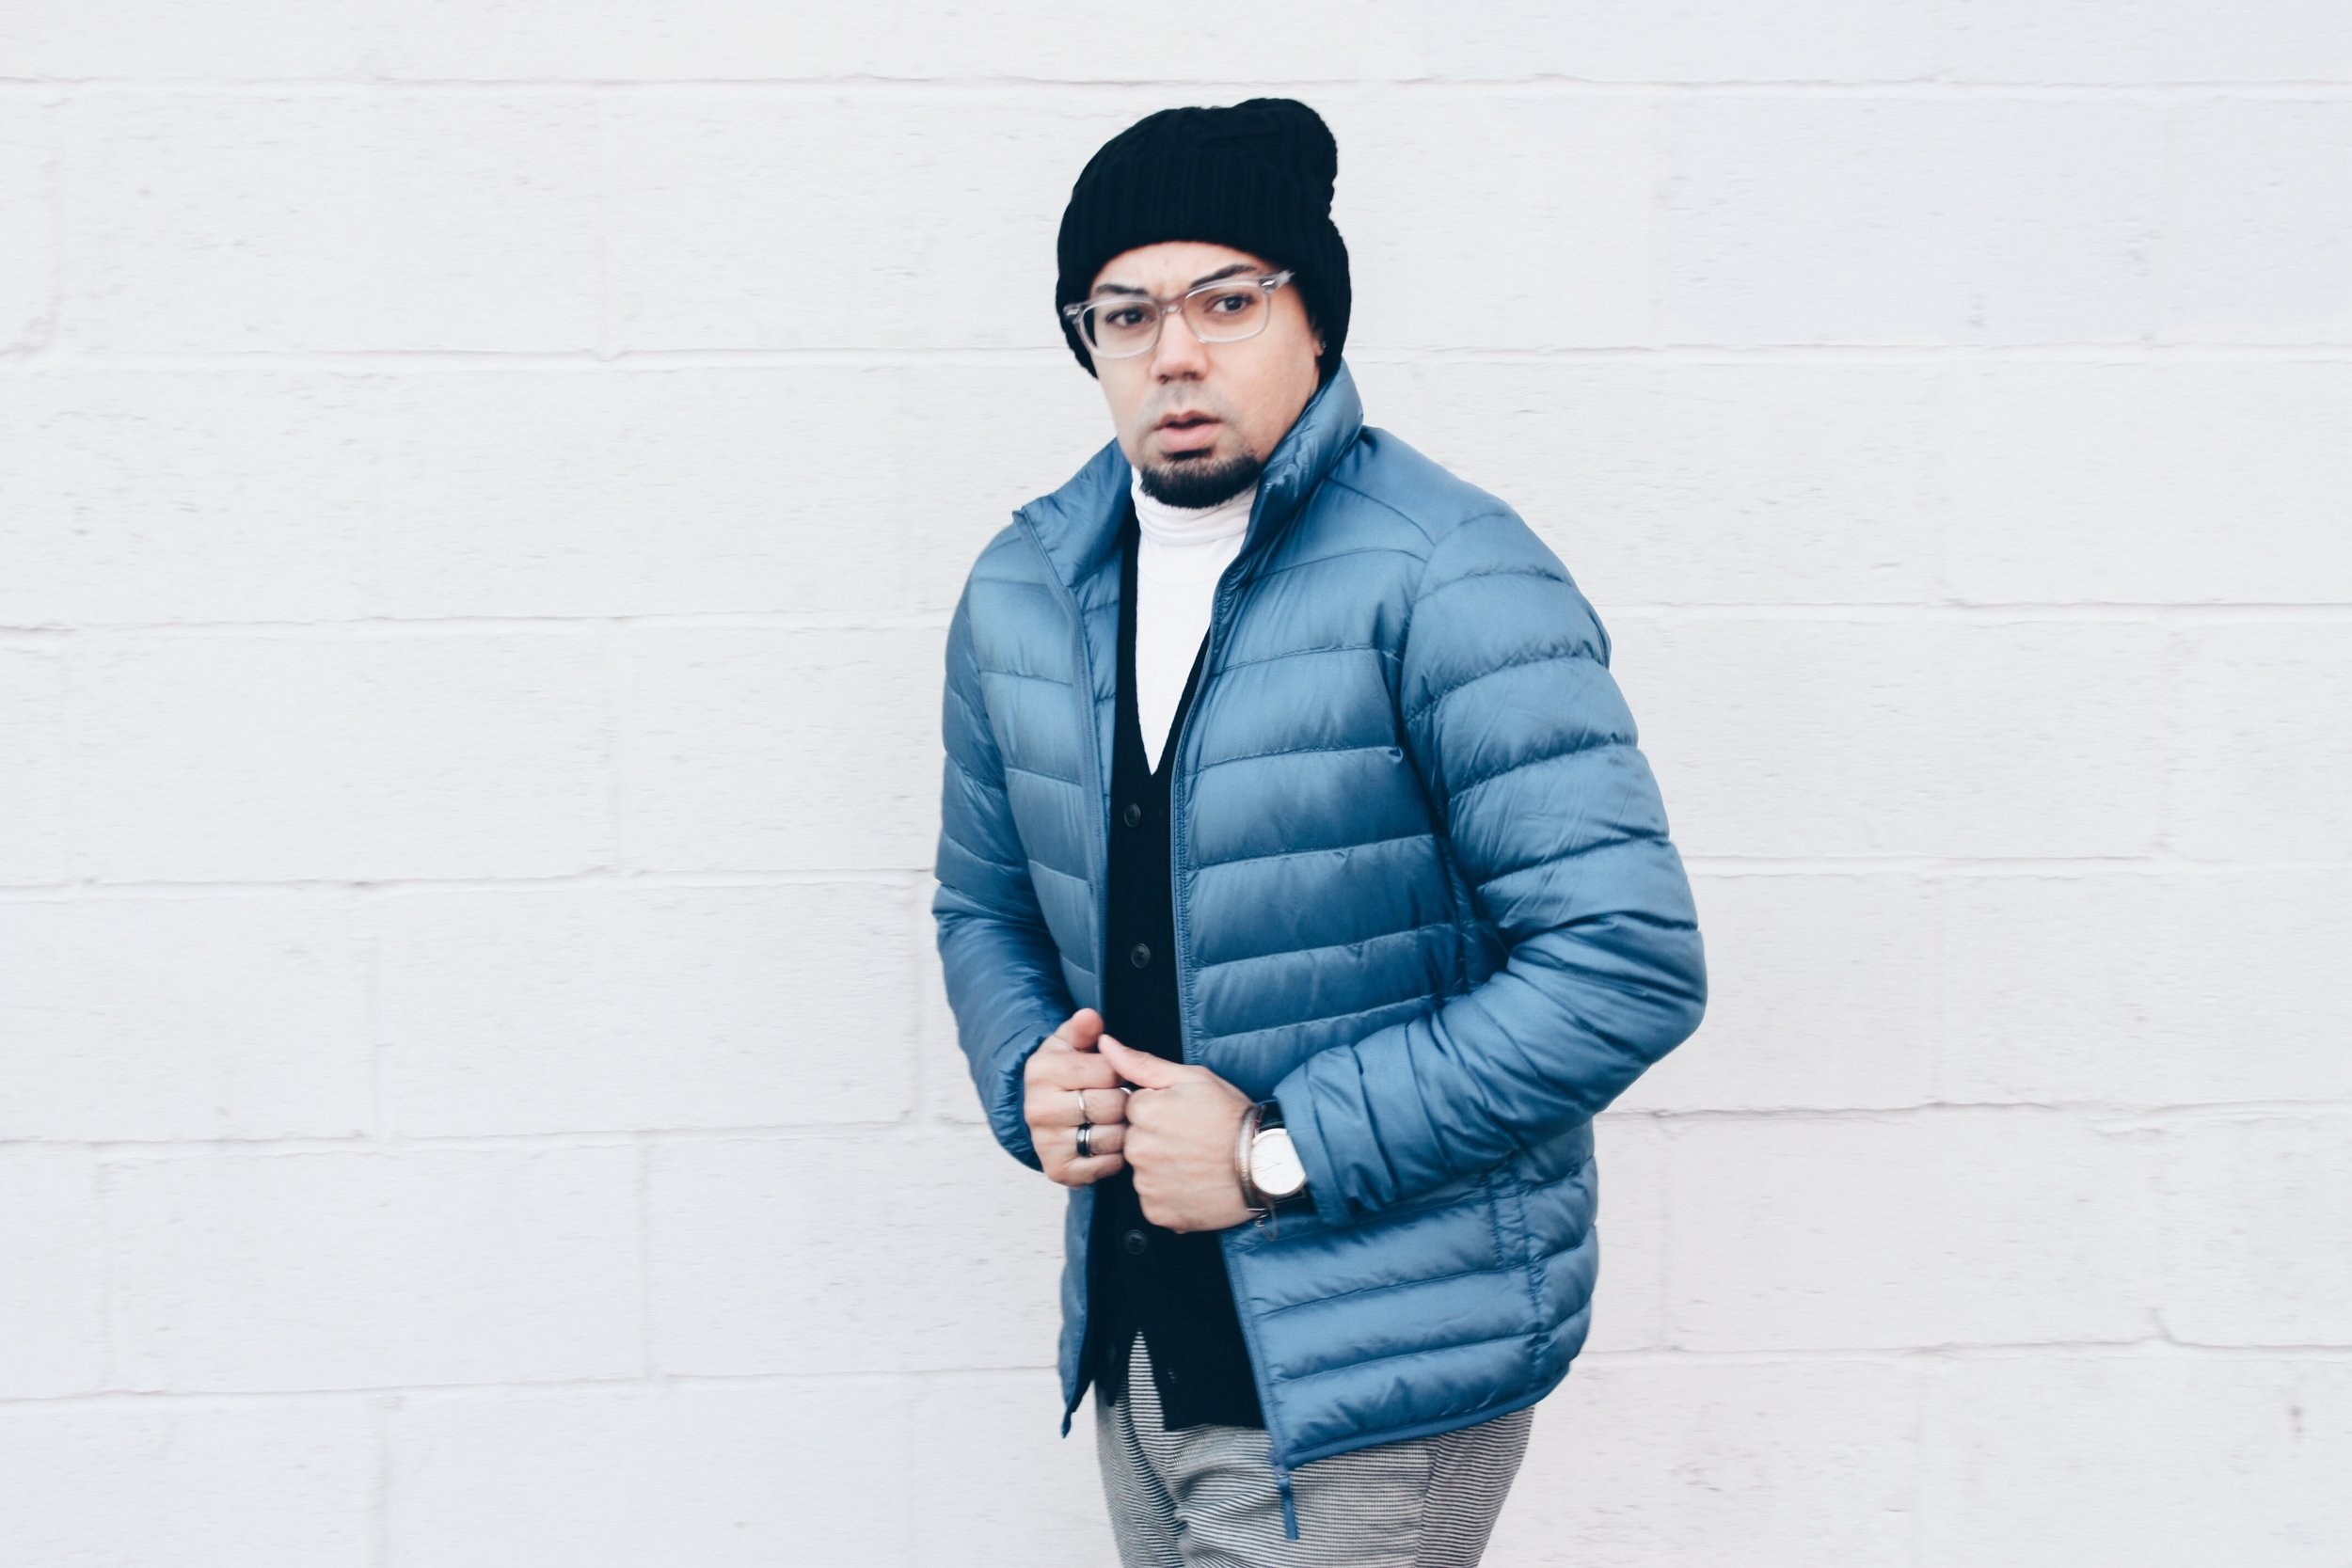 sam-c-perry-uniqlo-heattech-smart-holiday-looks-with-uniqlo-cold-pull.jpg